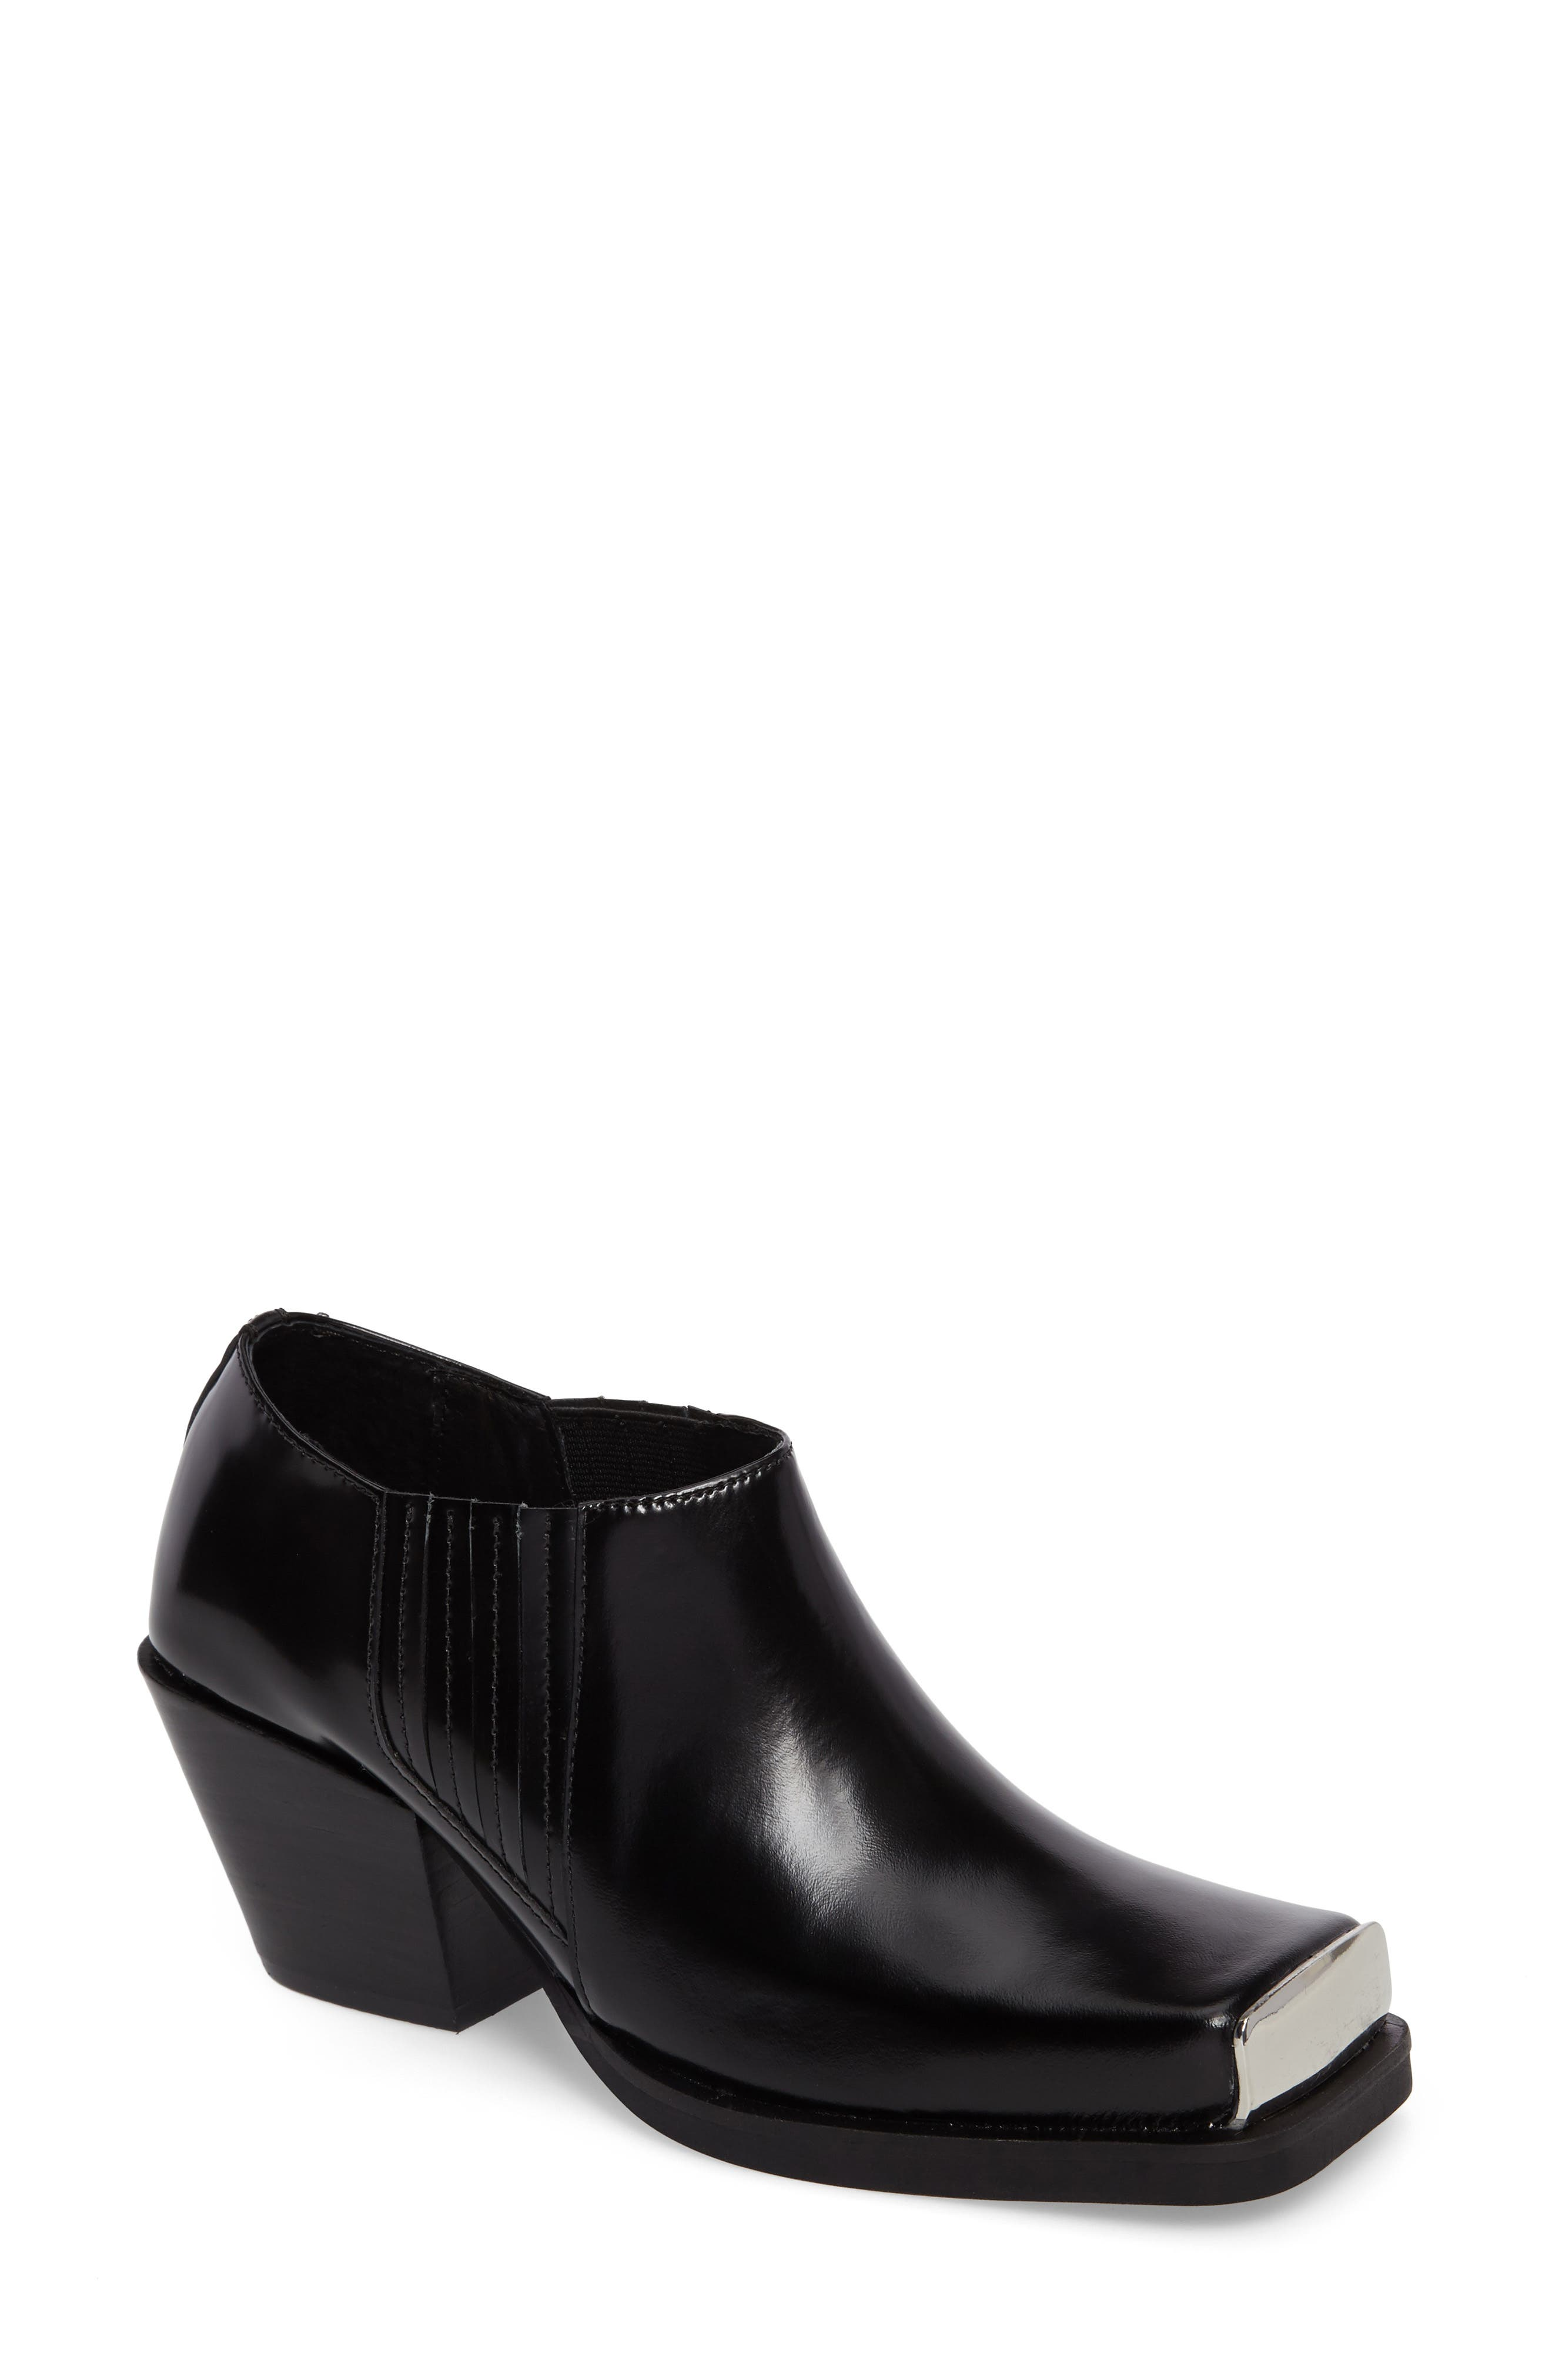 Alternate Image 1 Selected - Jeffrey Campbell Reynoso Square Toe Bootie (Women)